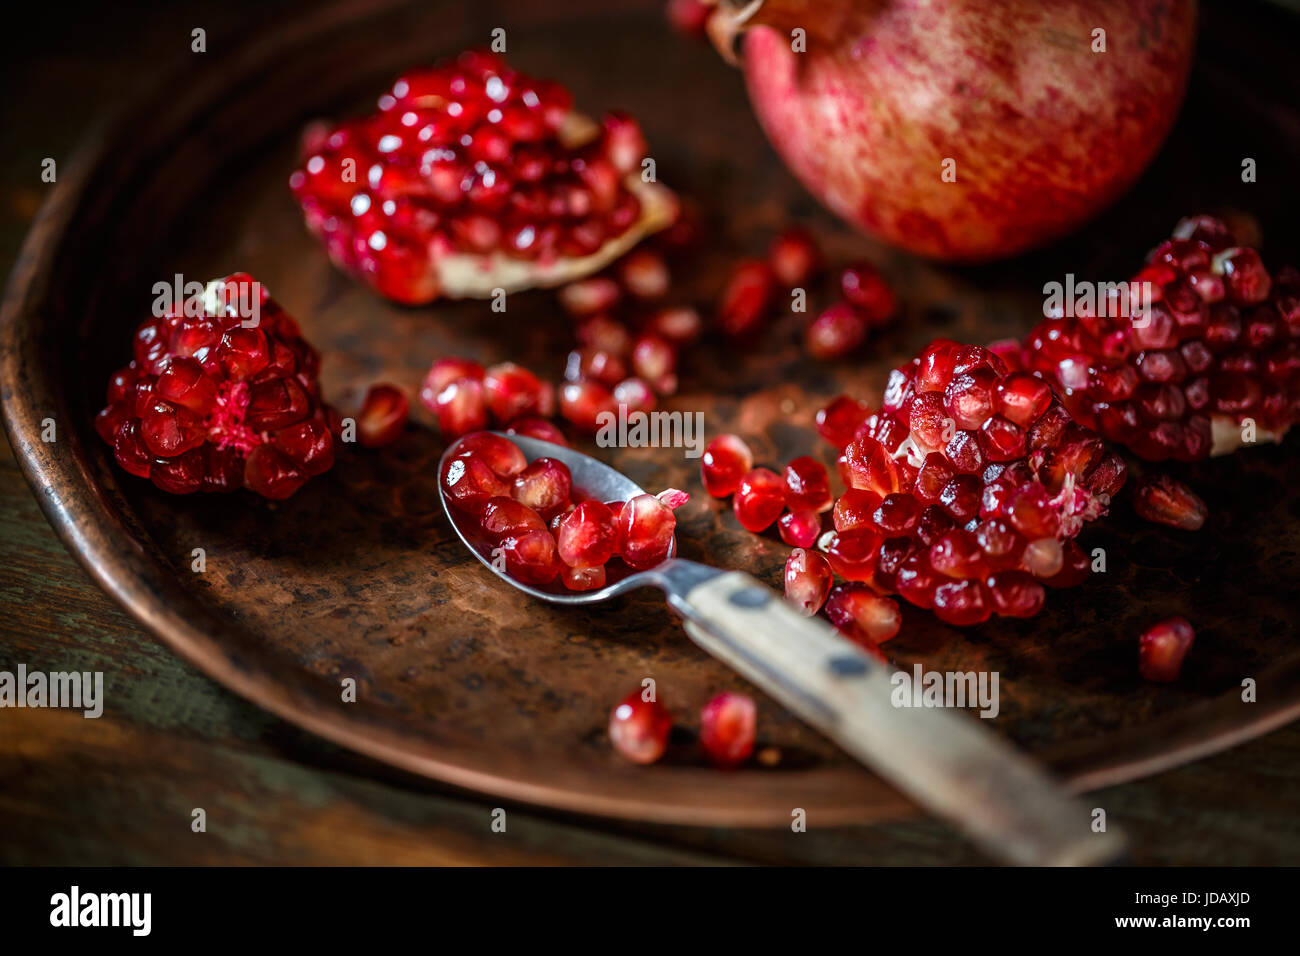 Fresh peeled pomegranates with ruby red beans - Stock Image